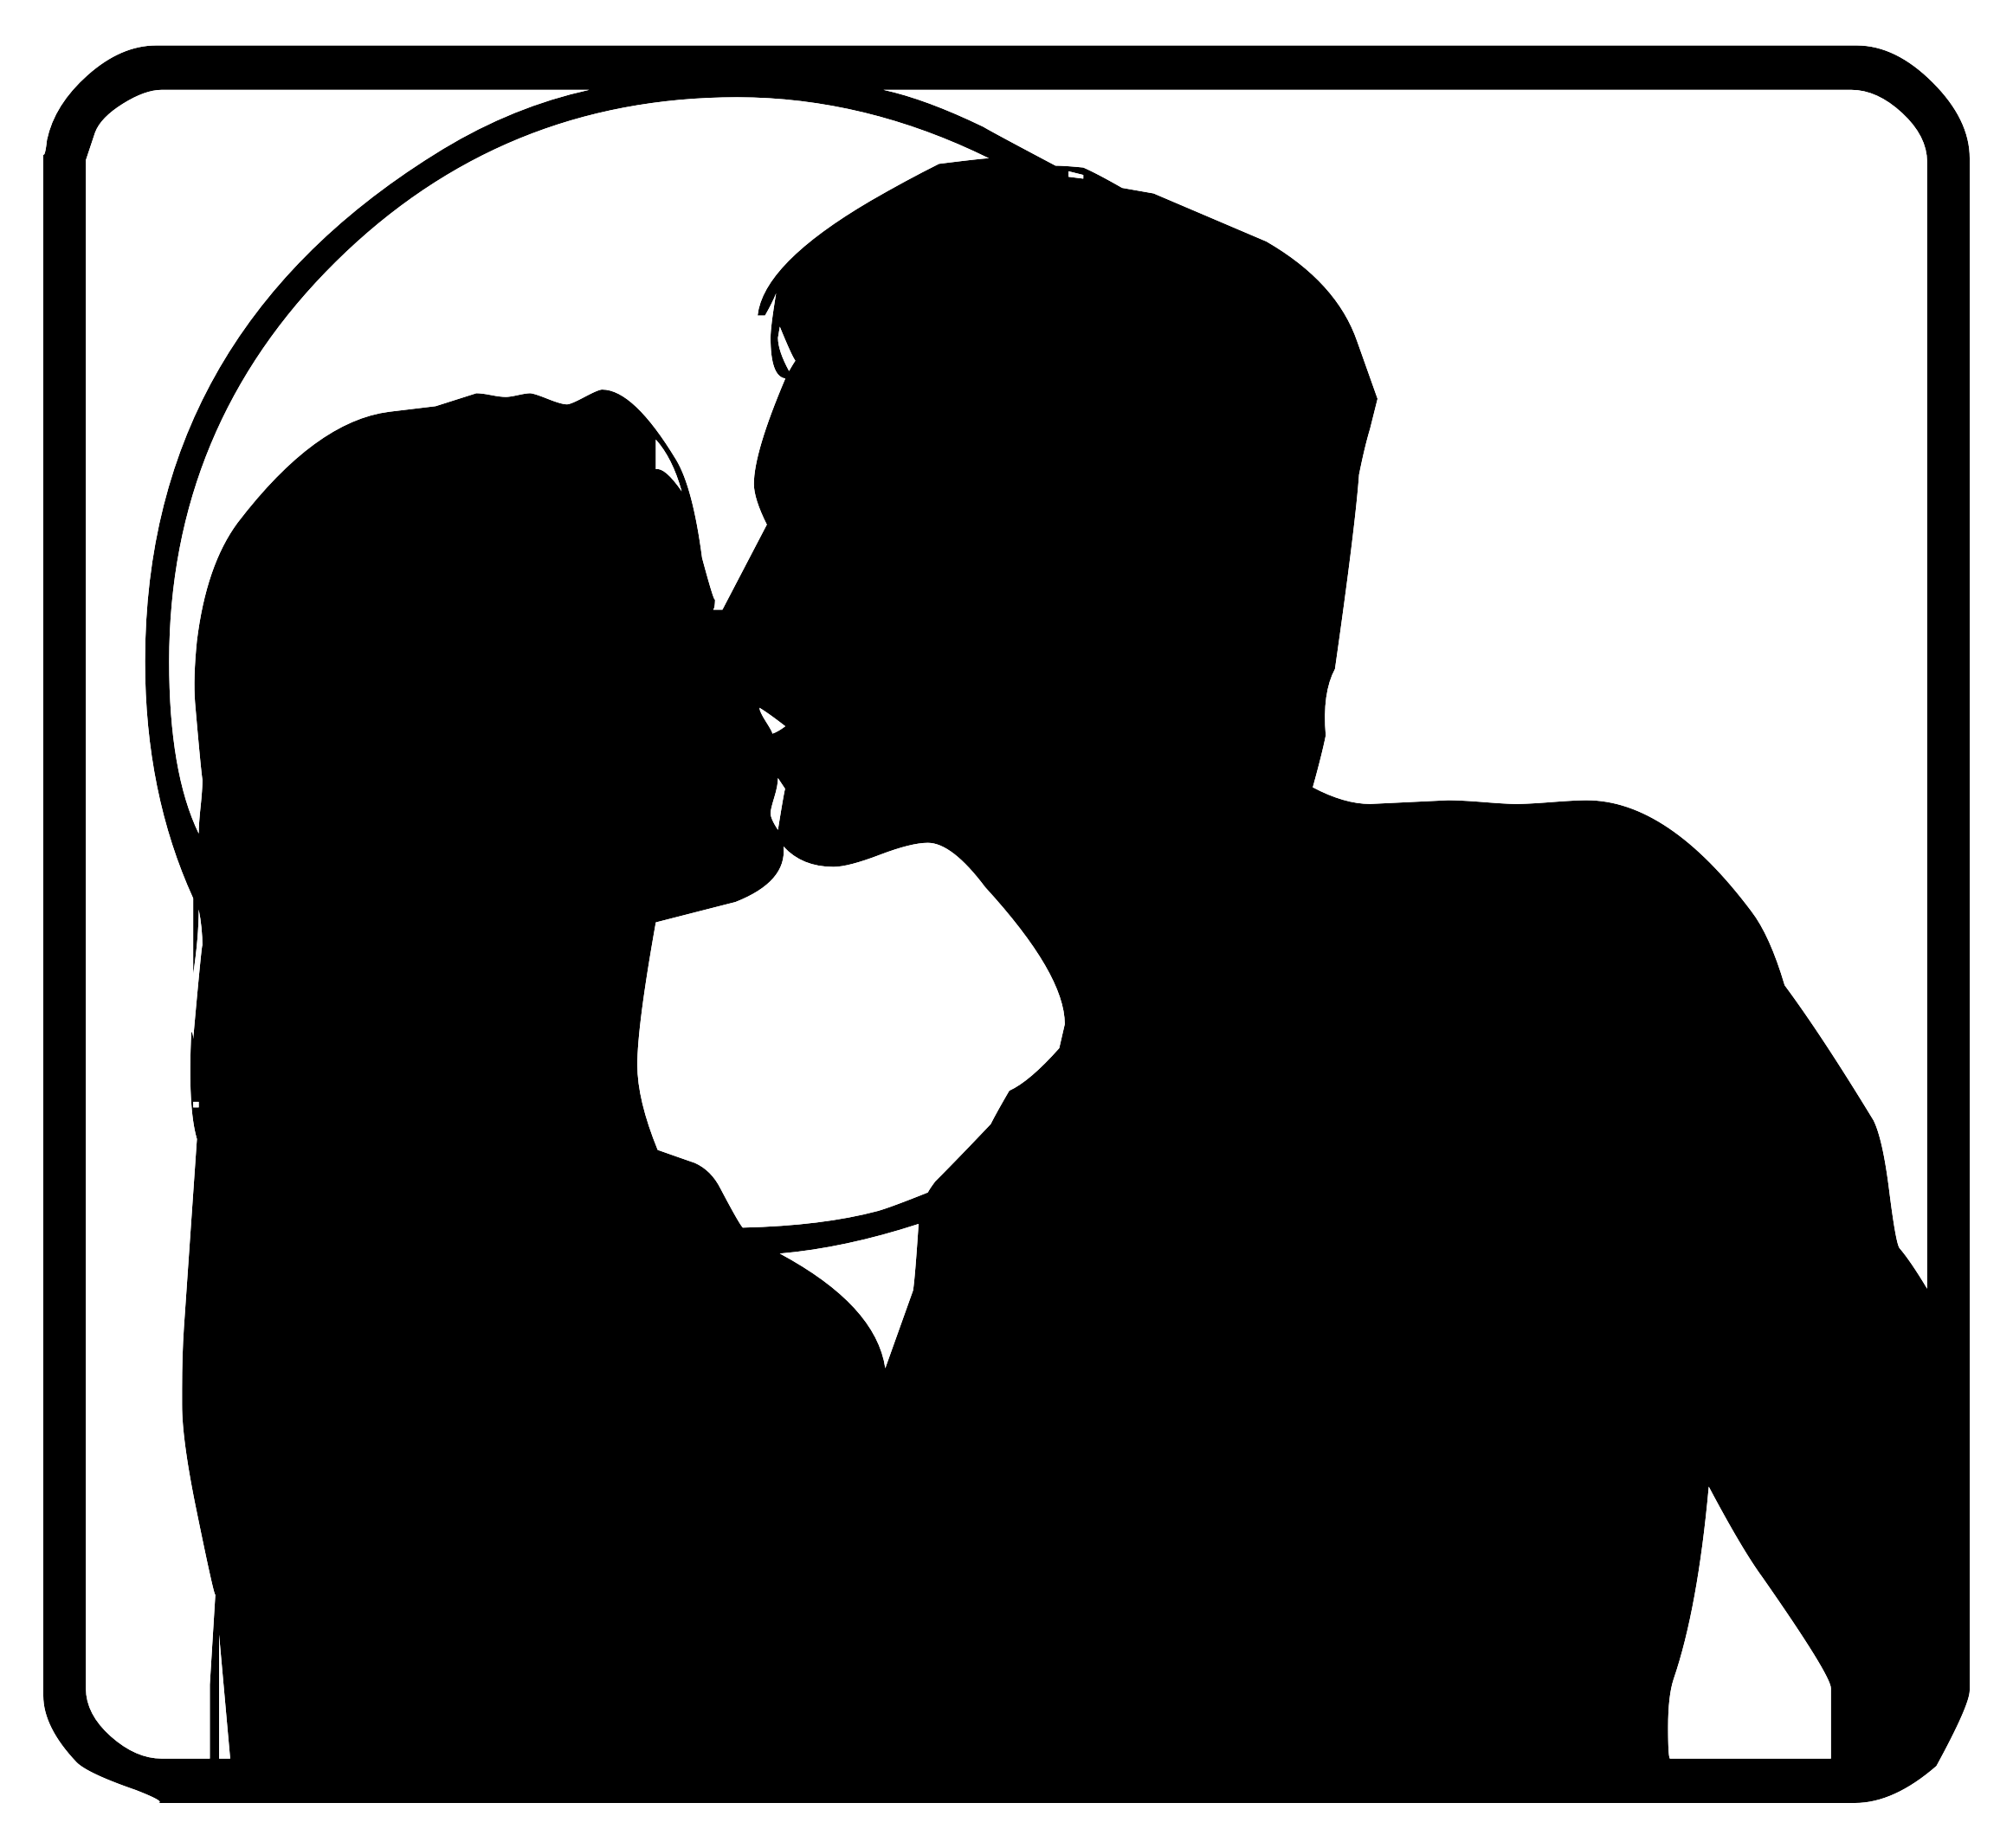 2325x2135 Black Silhouette Of Kissing Couple Free Image